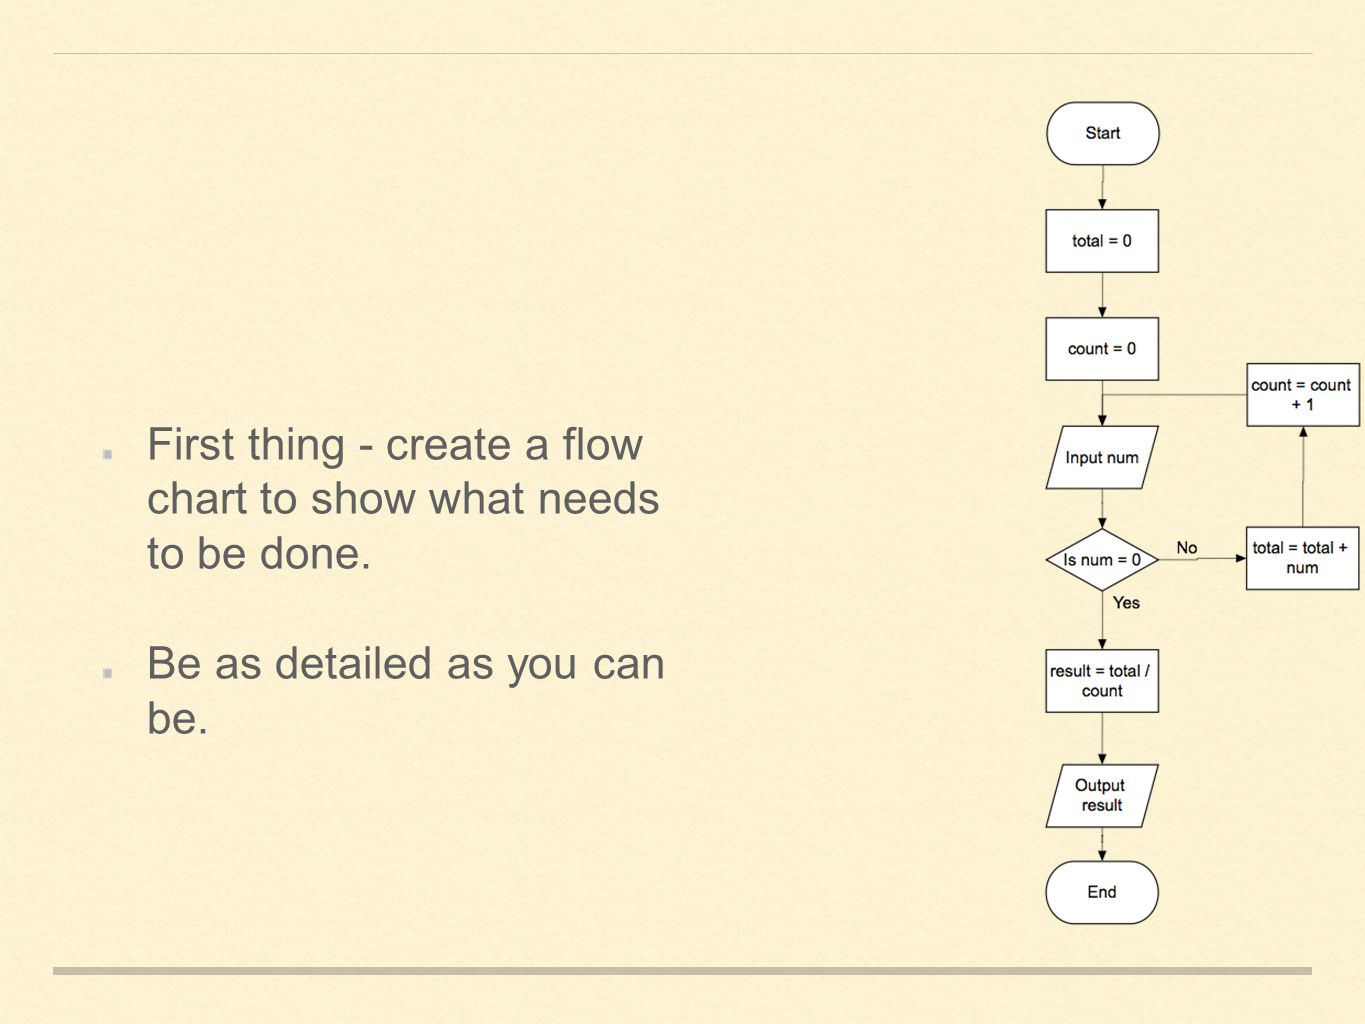 First thing - create a flow chart to show what needs to be done.